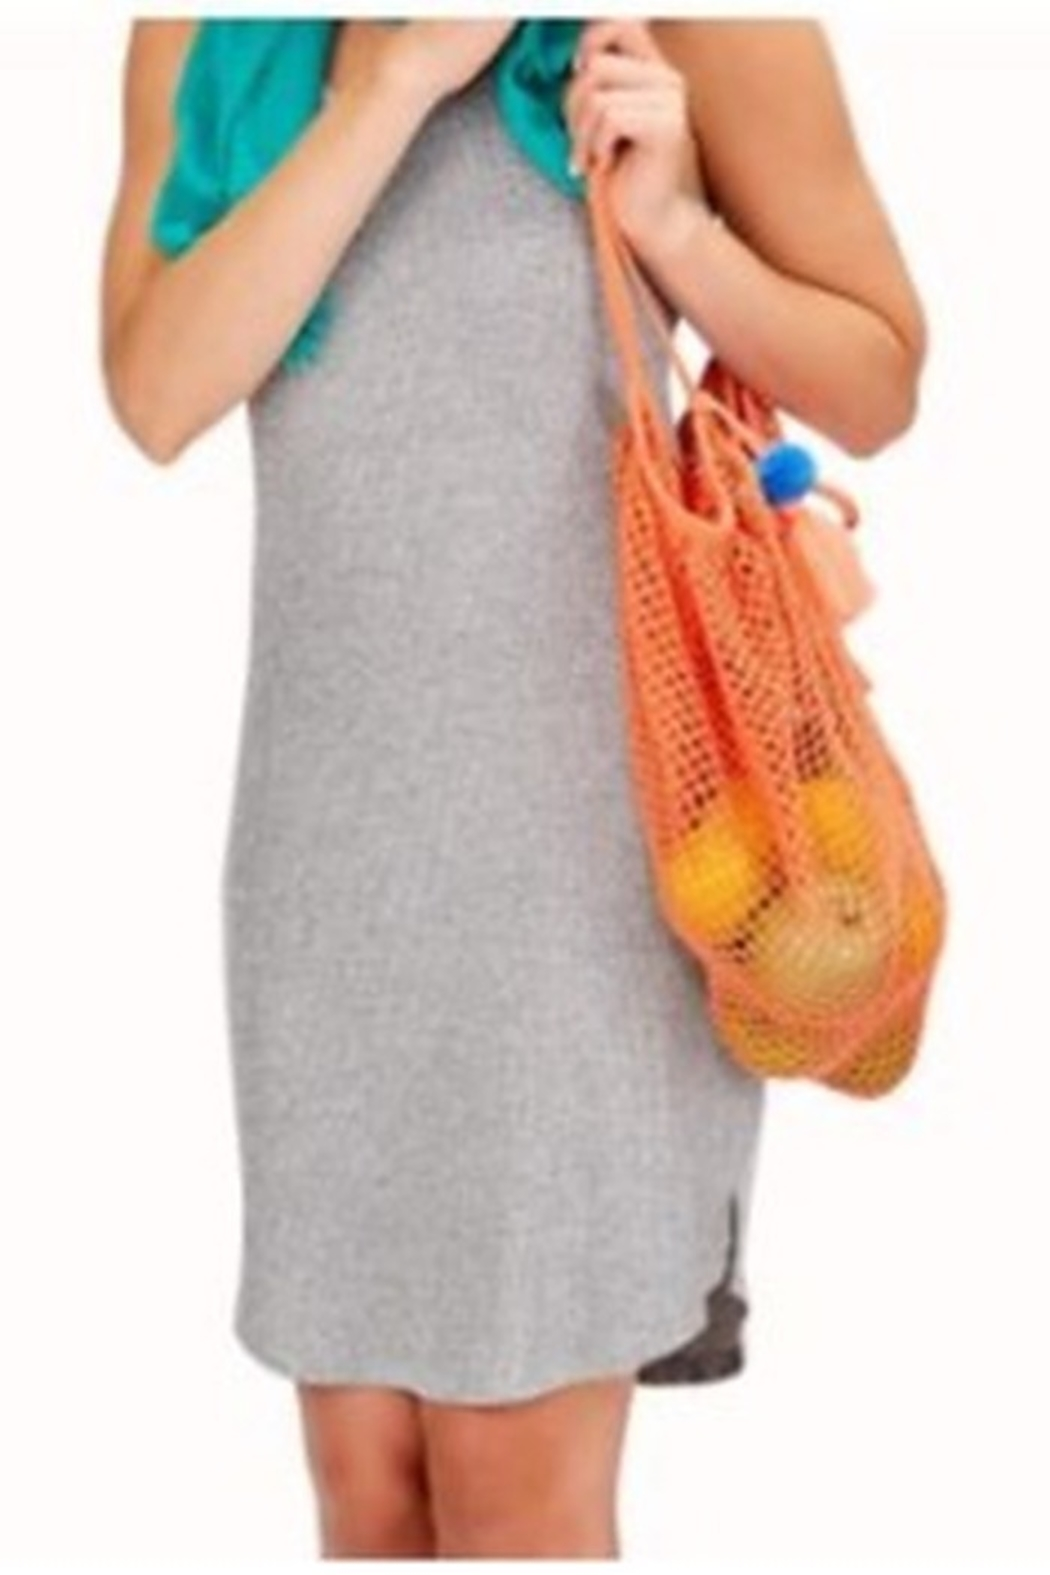 Two's Company Foldable String Shopper with Pom Pom Tassle - Front Cropped Image